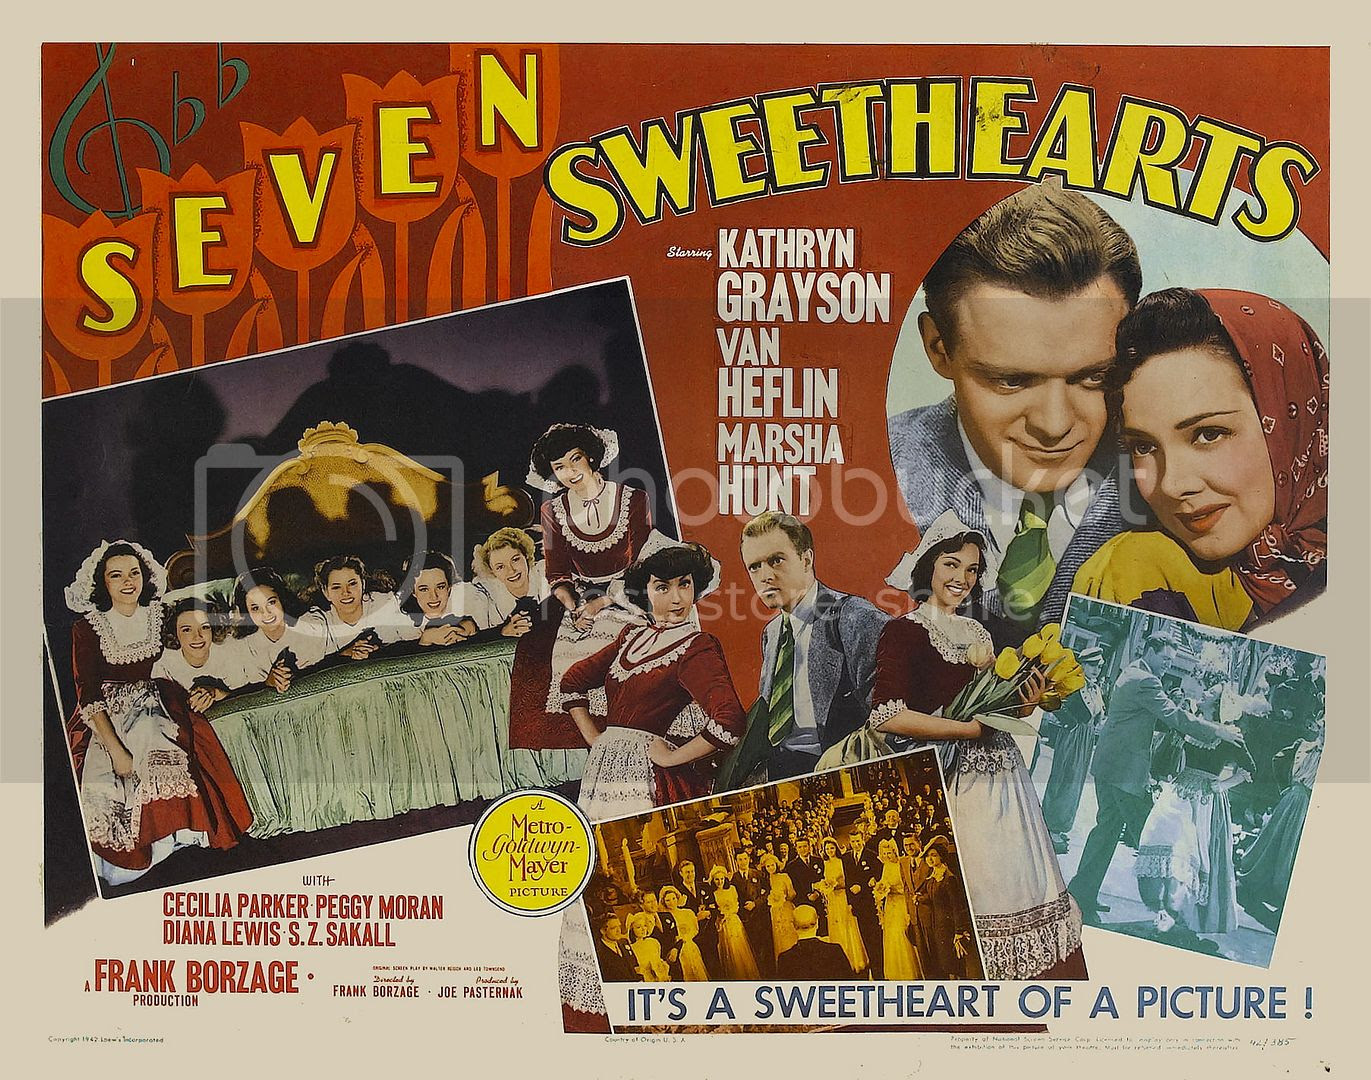 photo 1942 Seven sweethearts ing hs 02.jpg